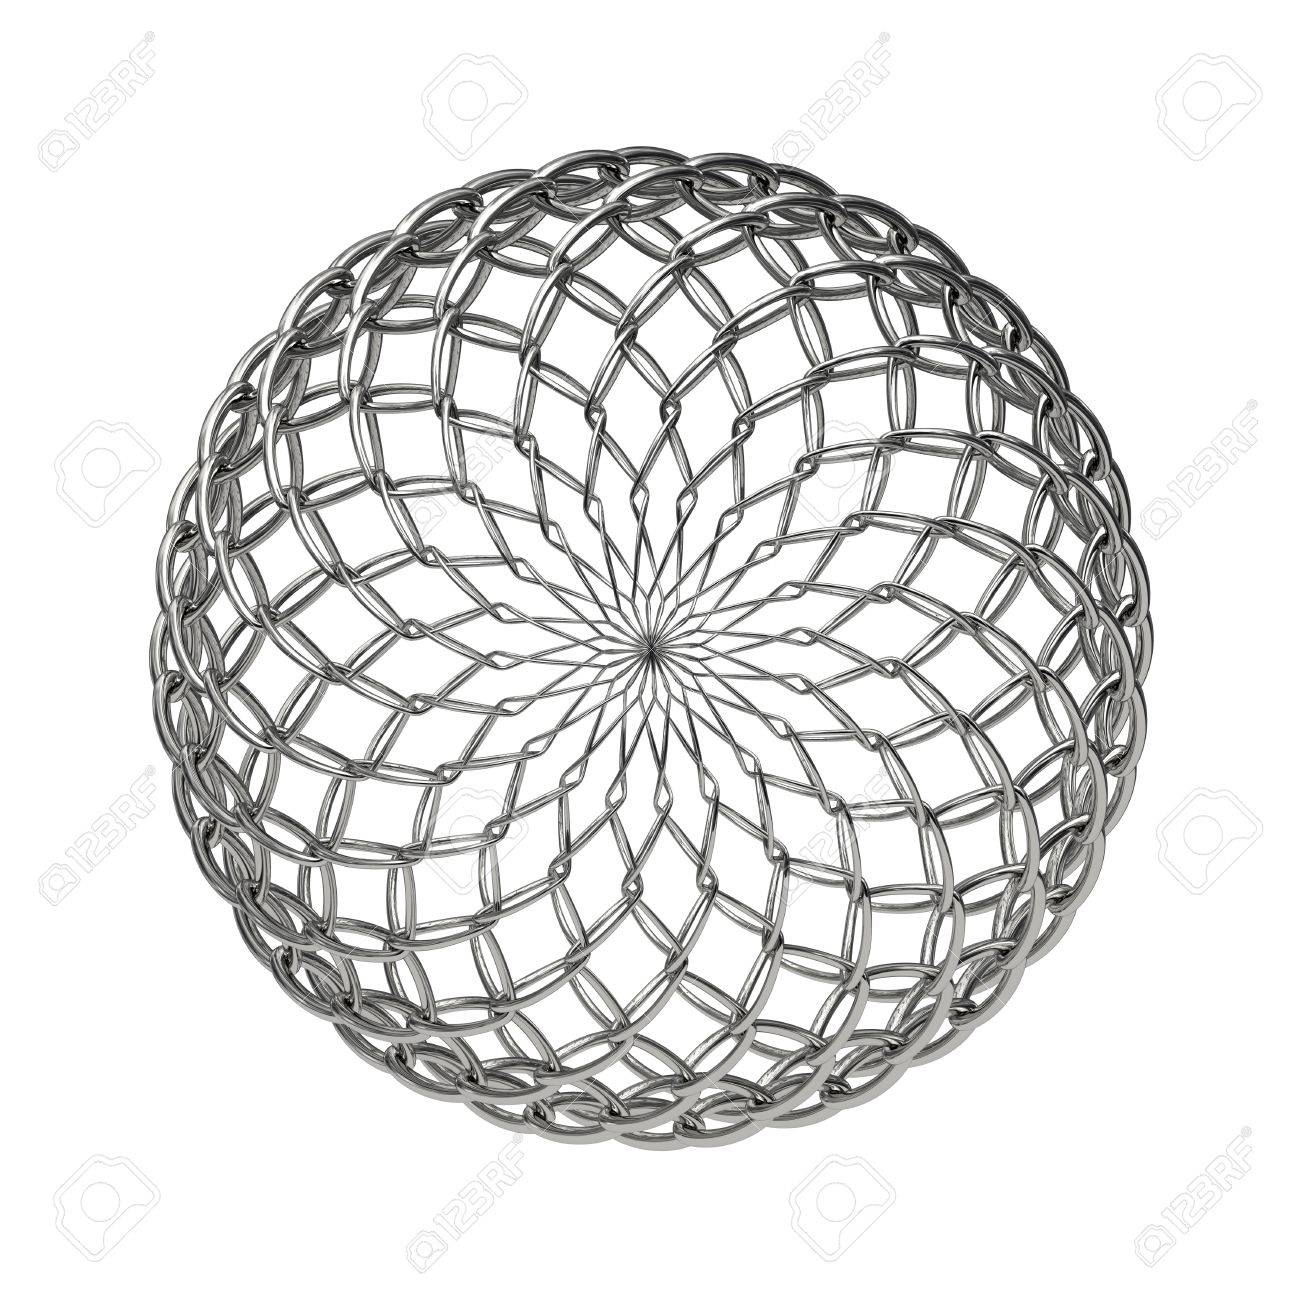 1300x1300 Ball Composed From Metallic Mesh And Isolated On White Background